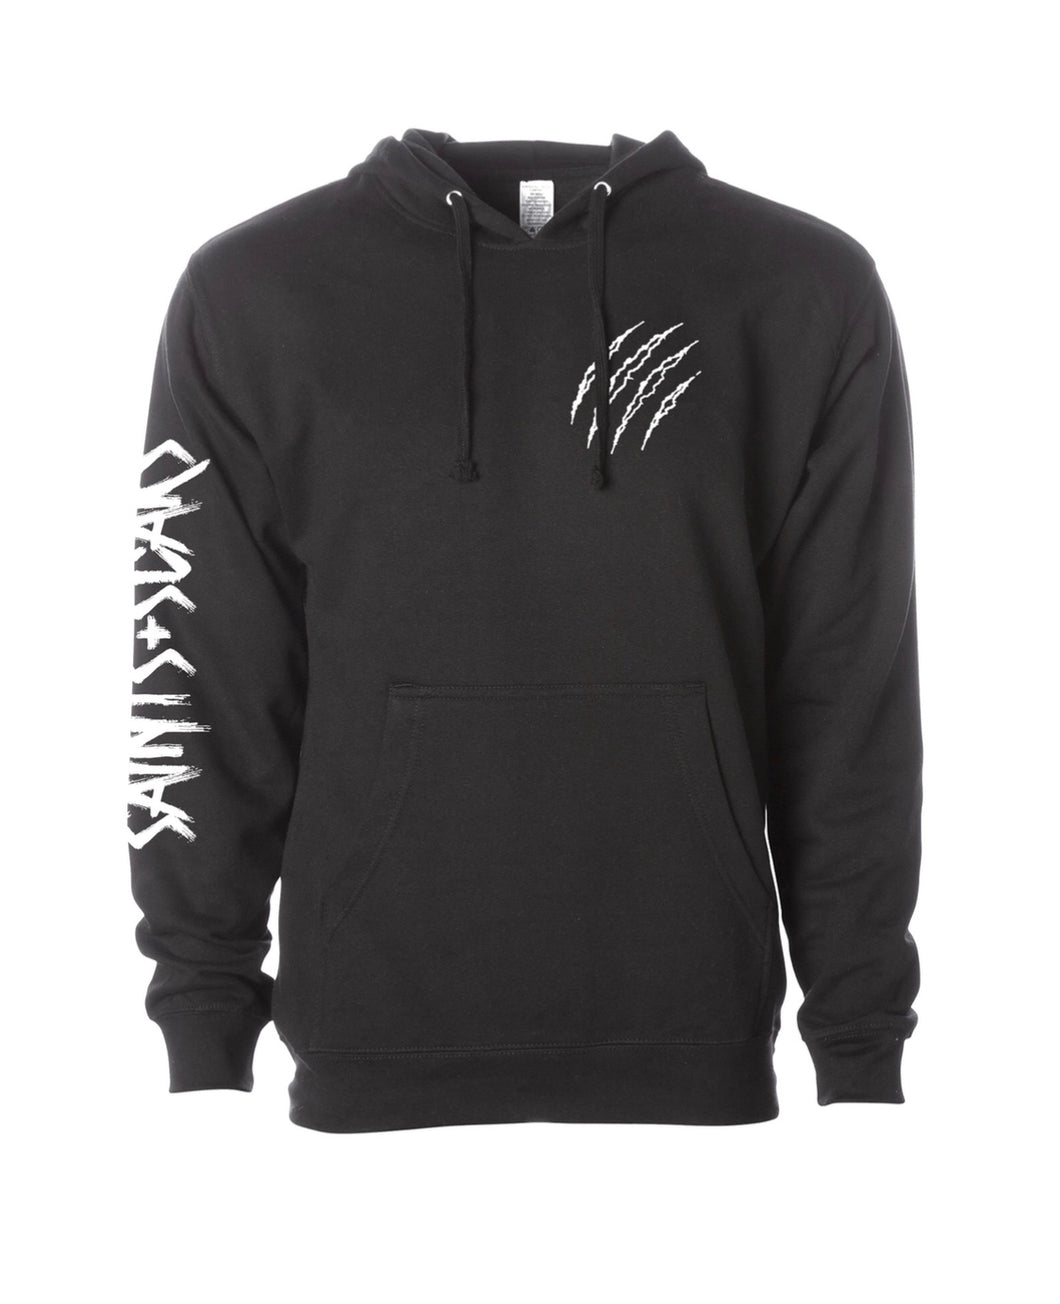 Saints + Scars Embroider Hoodie